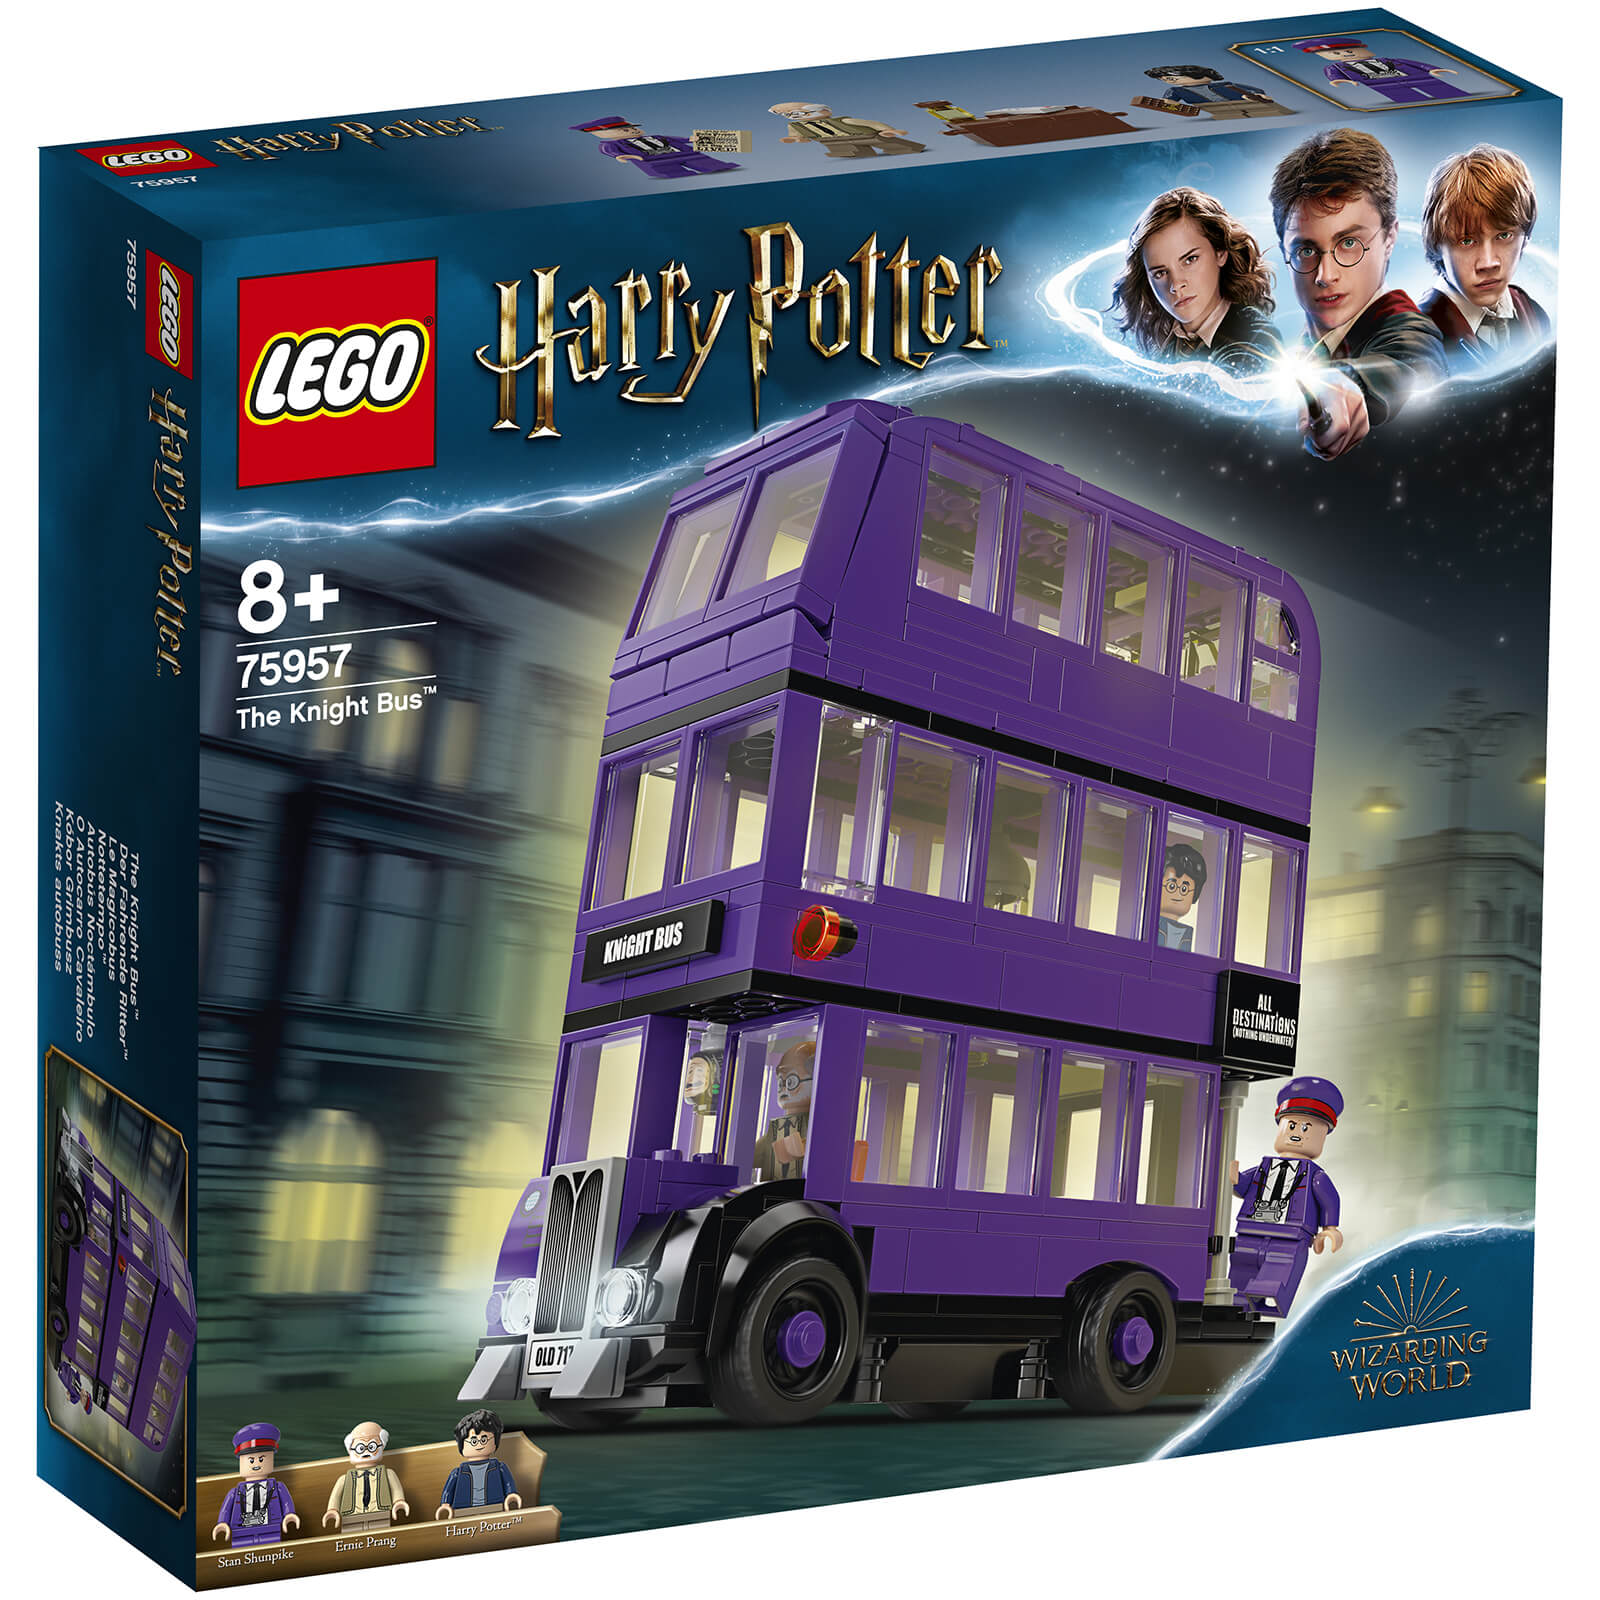 Image of LEGO Harry Potter: Knight Bus Toy (75957)